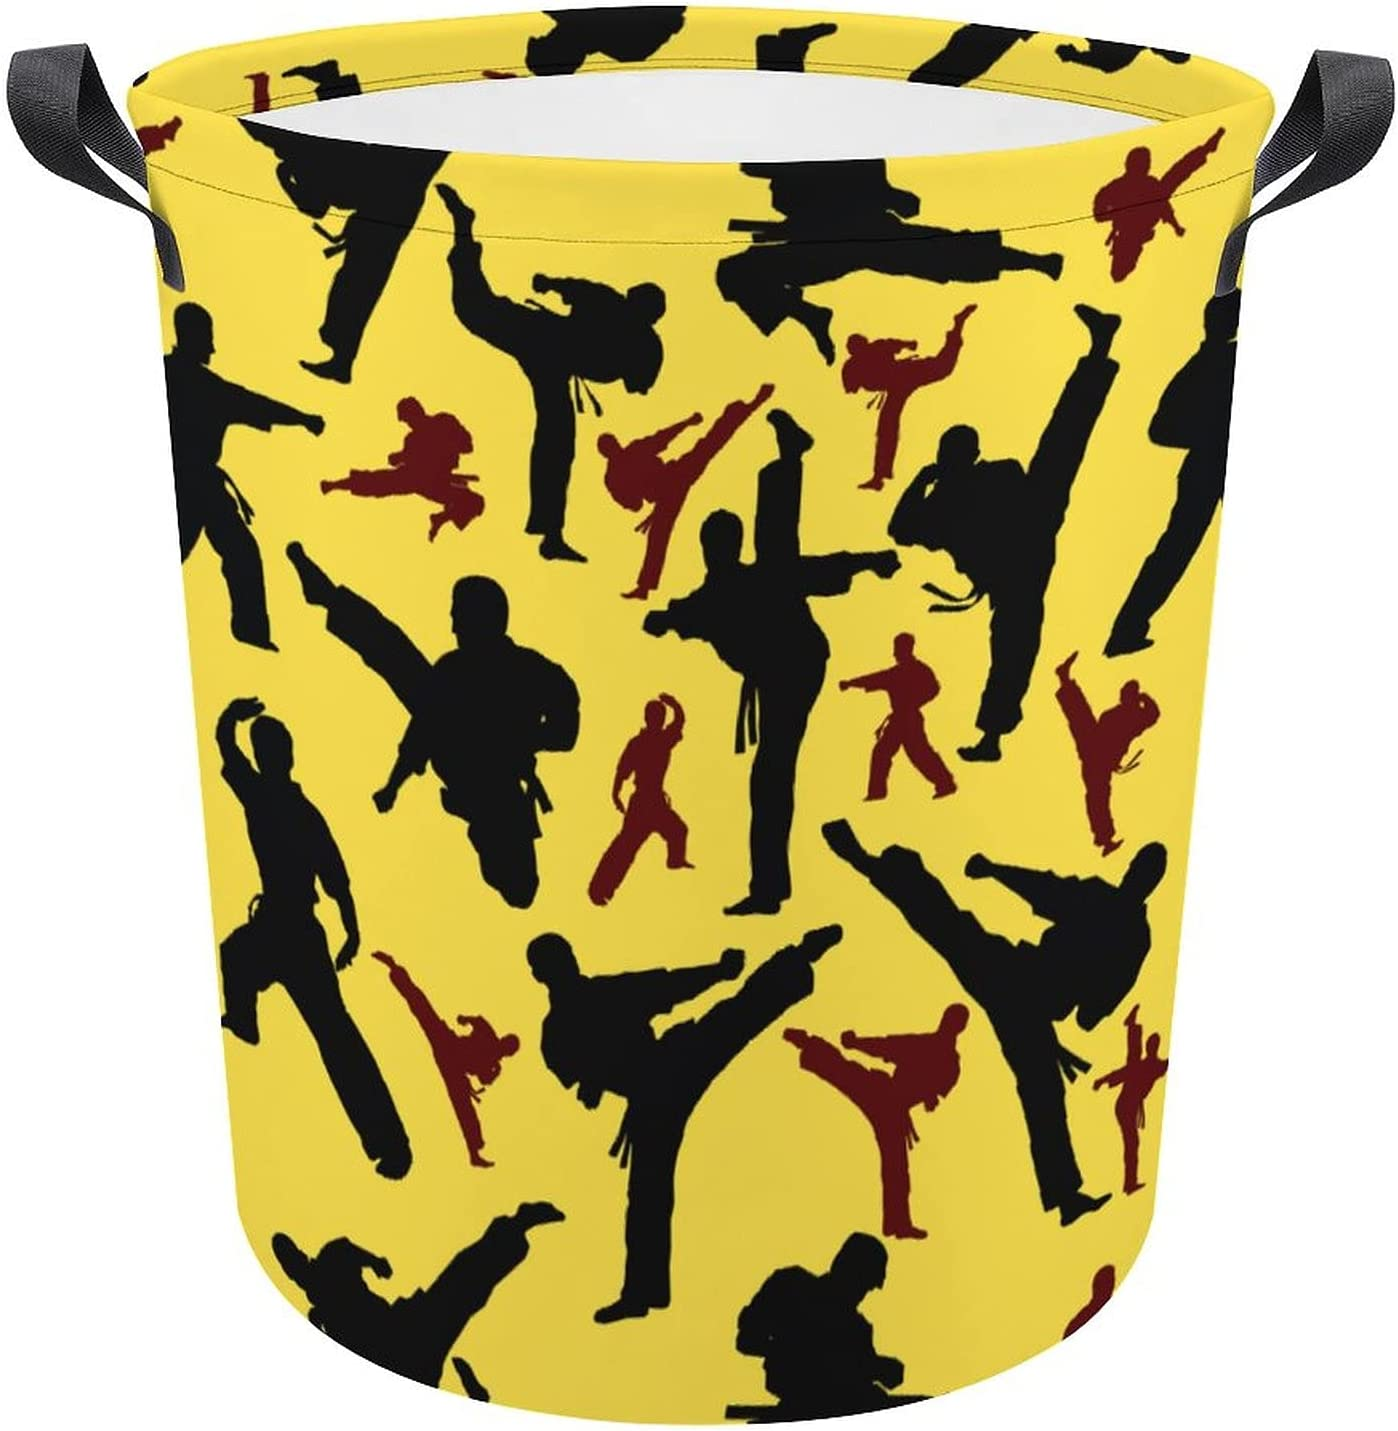 Funny Martial Arts Karate discount on Yelow Hamper Gift Oxford Laundry Po shipfree